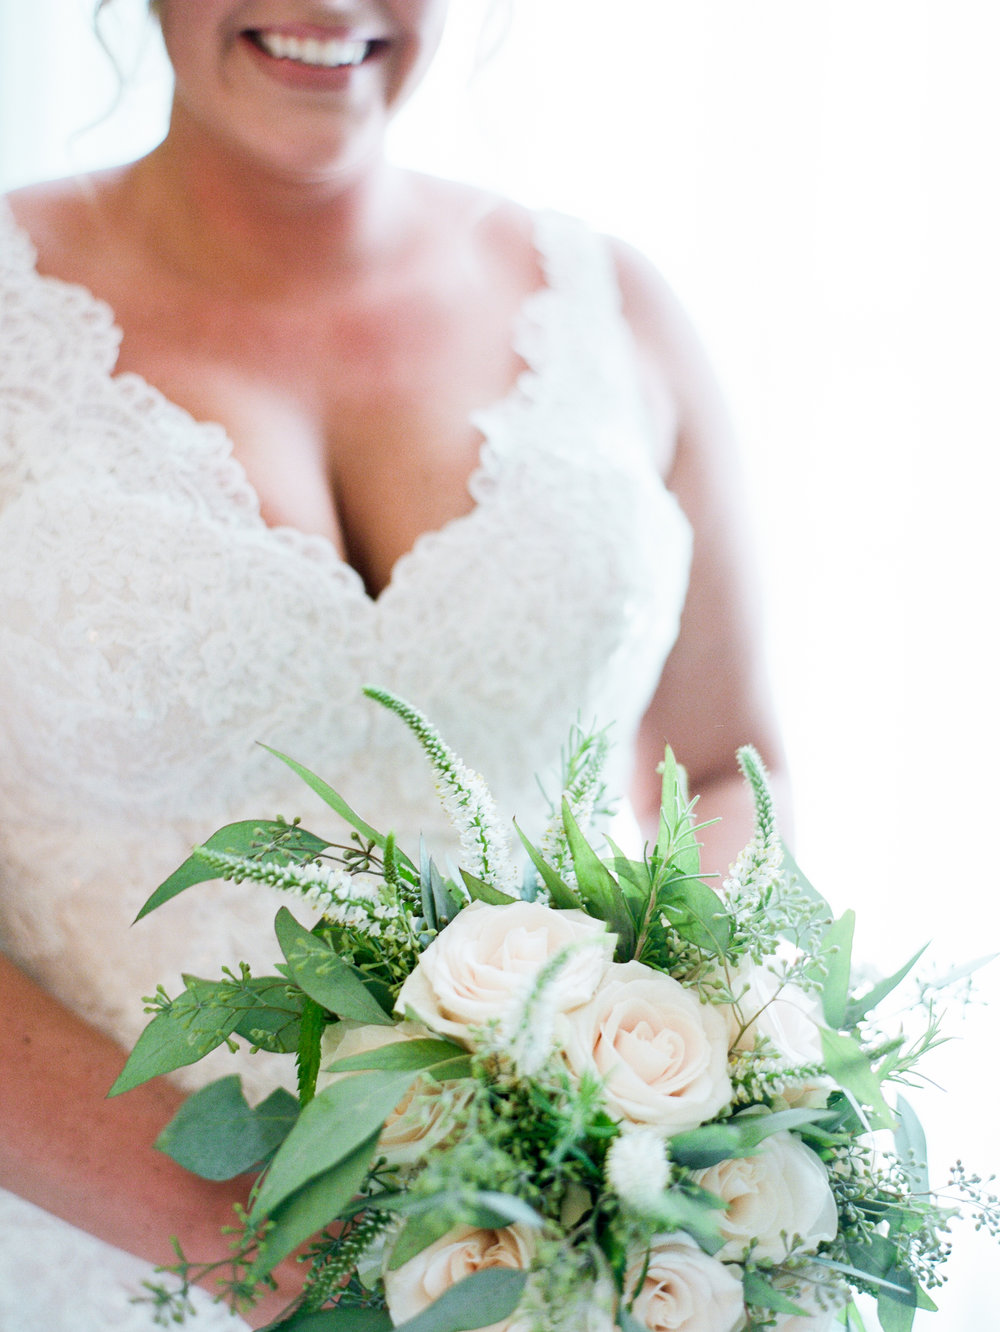 rosemary beach wedding photographer kaylie b poplin